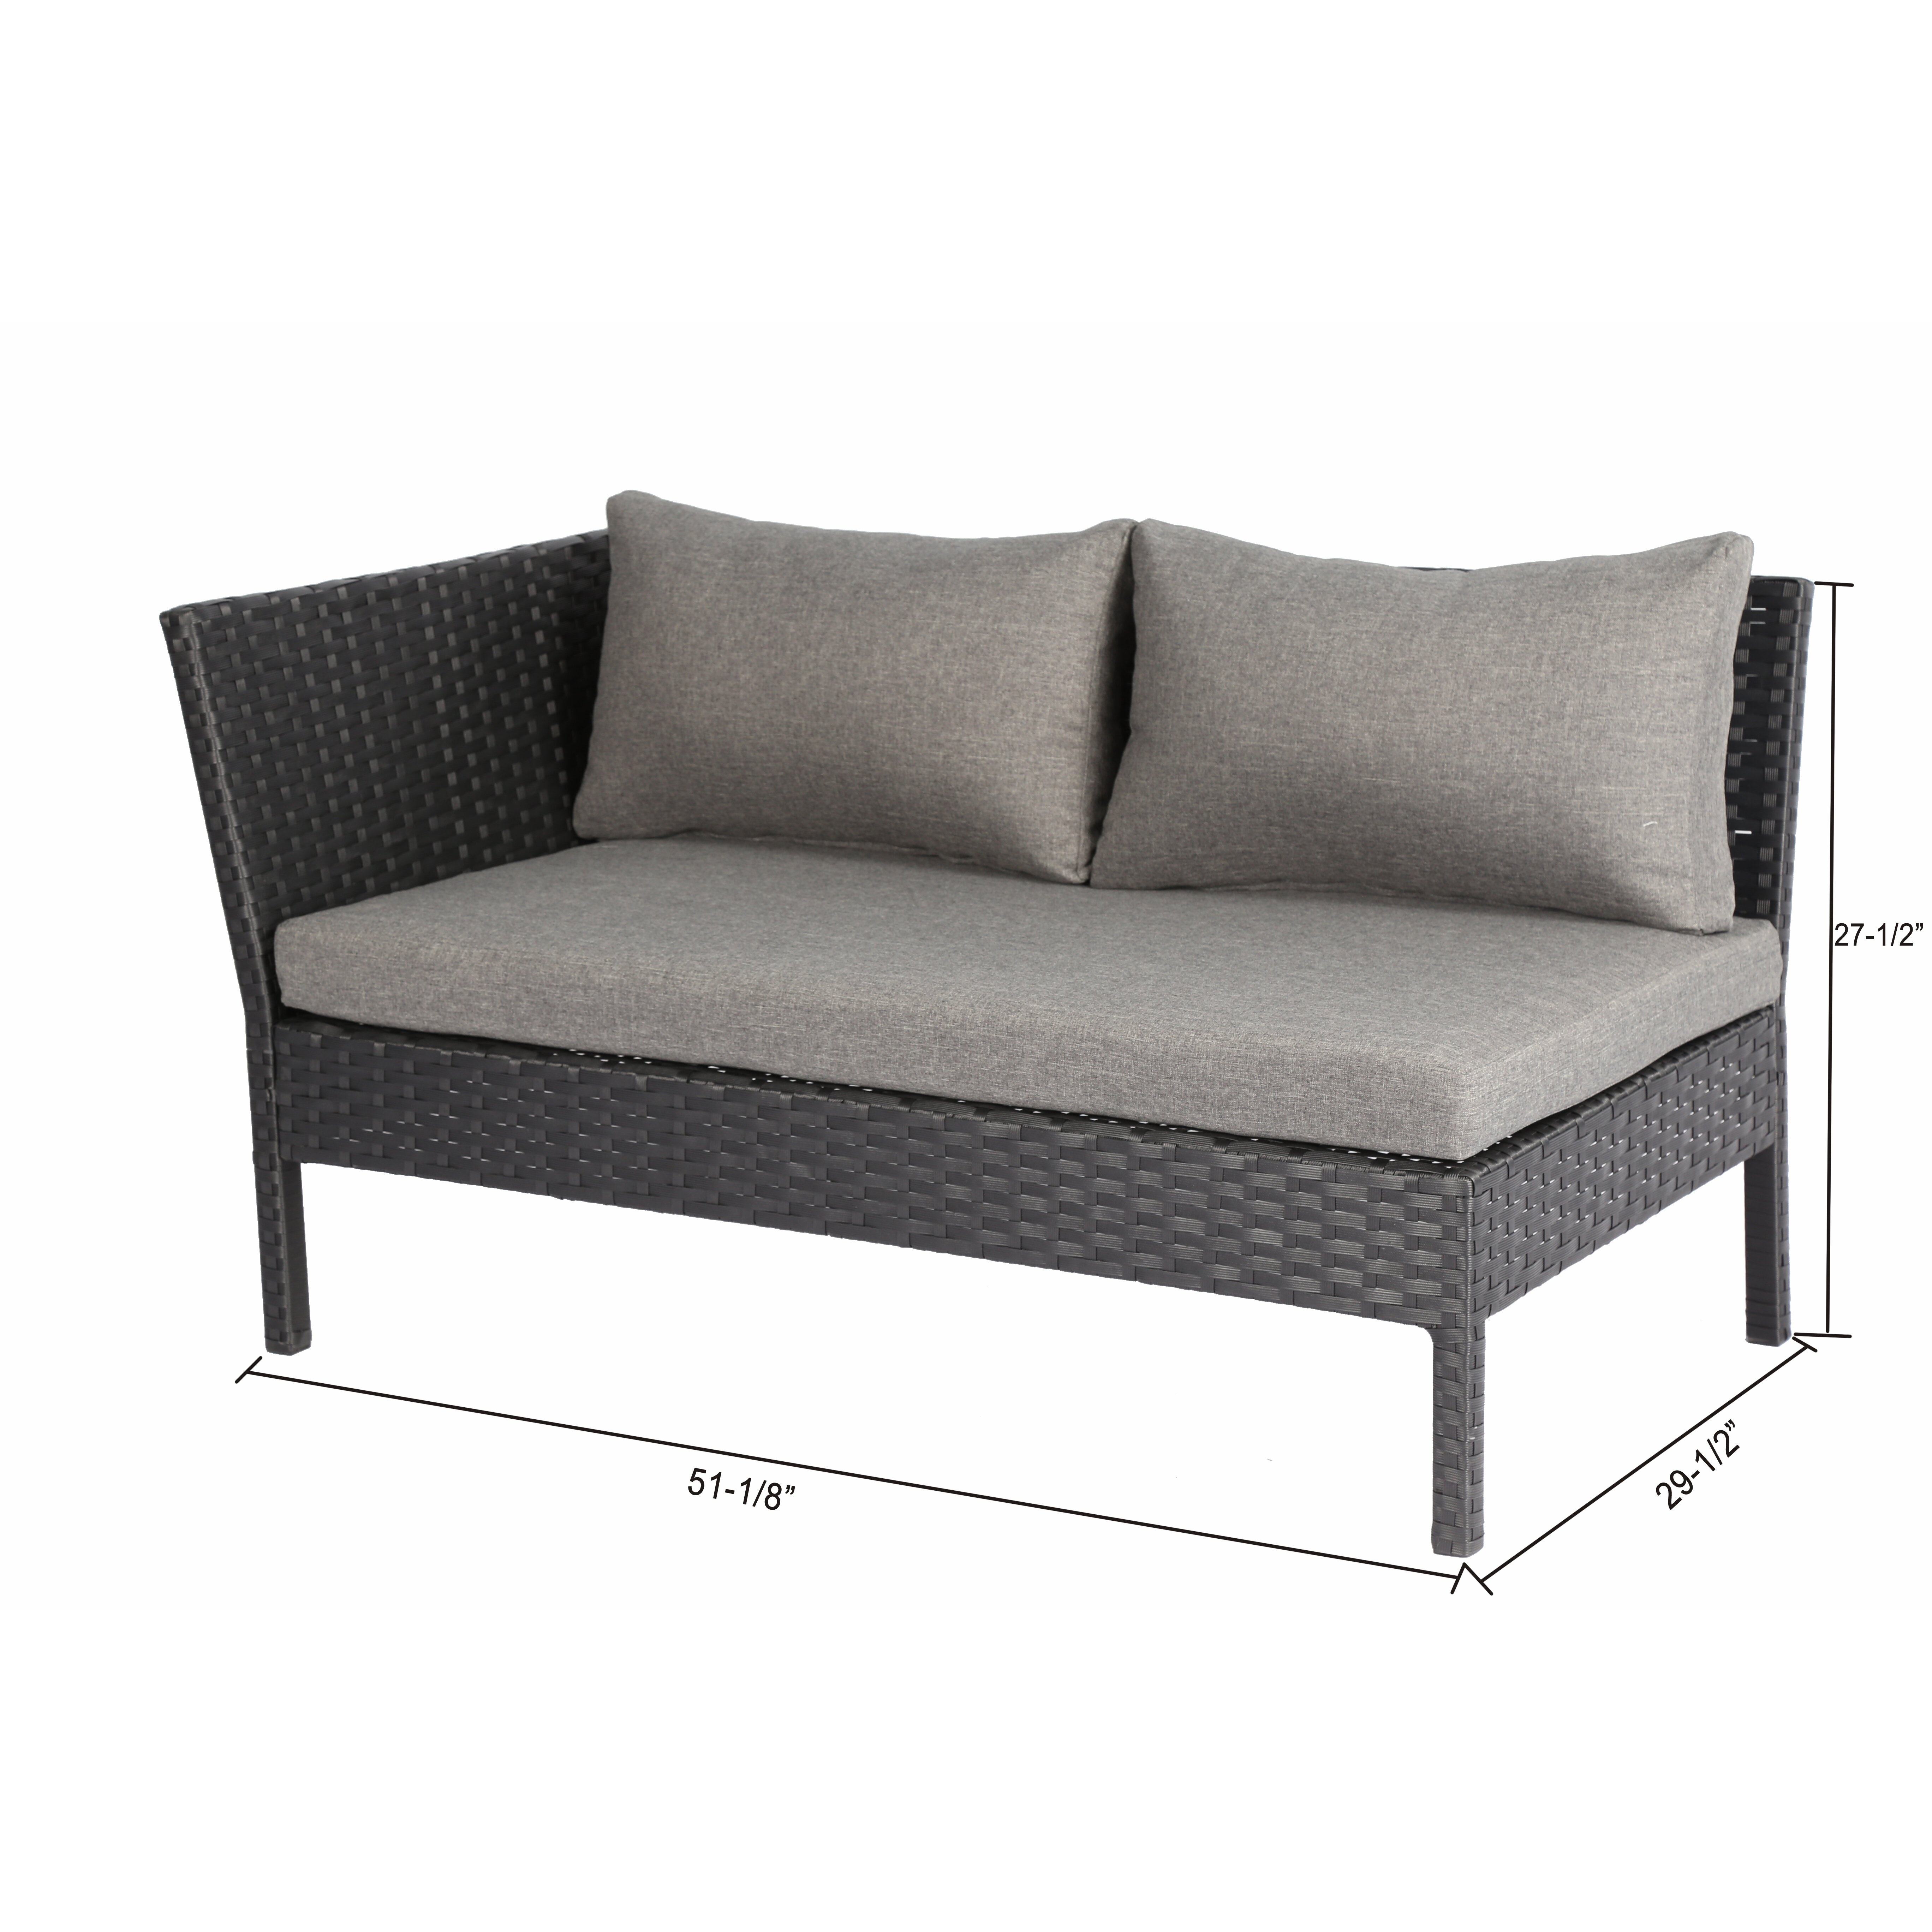 Sears Oasis Patio Furniture Set besides Target Patio Furniture ...